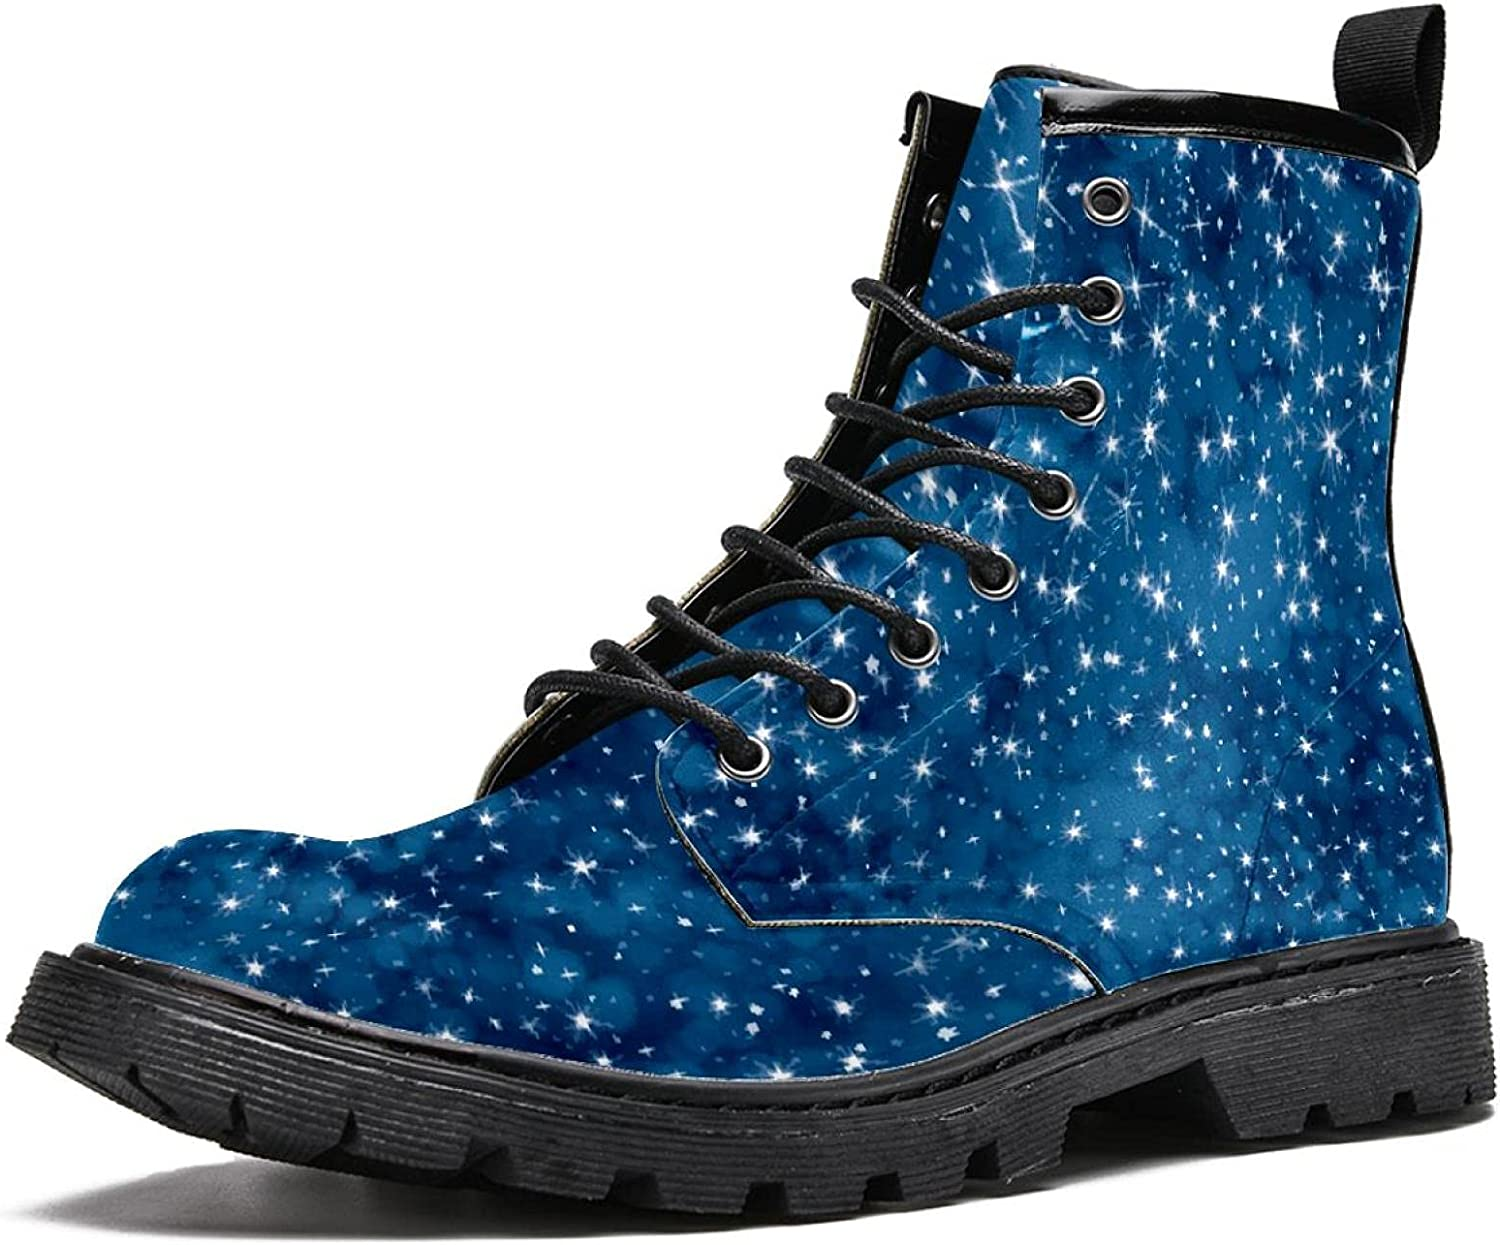 Waterproof Outdoor Lace-Up Leather 2021 autumn and winter new Combat Starry Boots Portland Mall Sky Blue